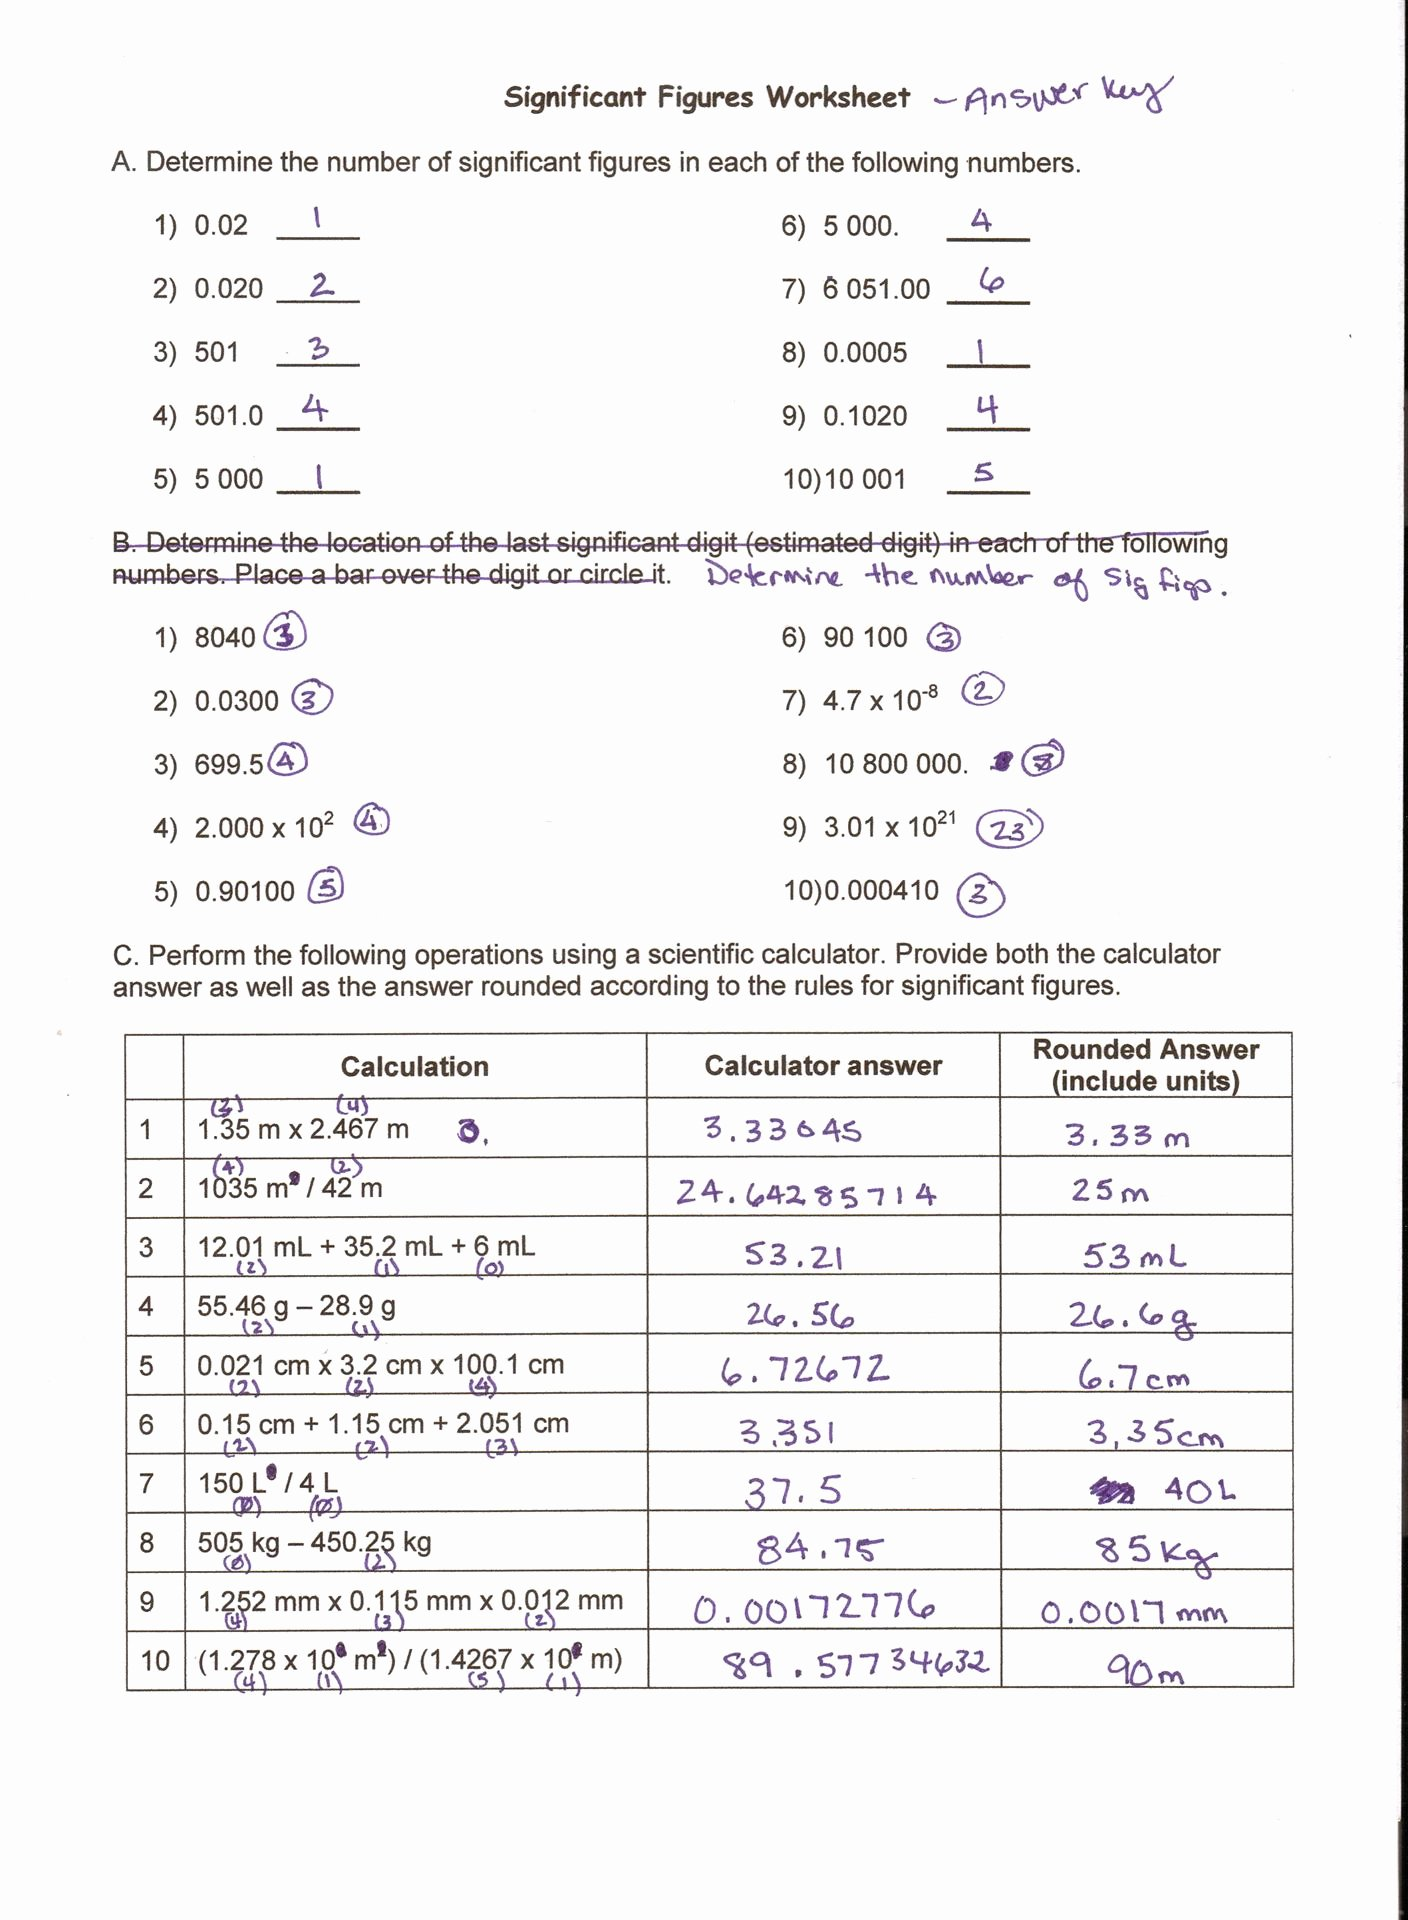 Metrics and Measurement Worksheet Answers Inspirational New 550 Counting atoms Worksheet Answer